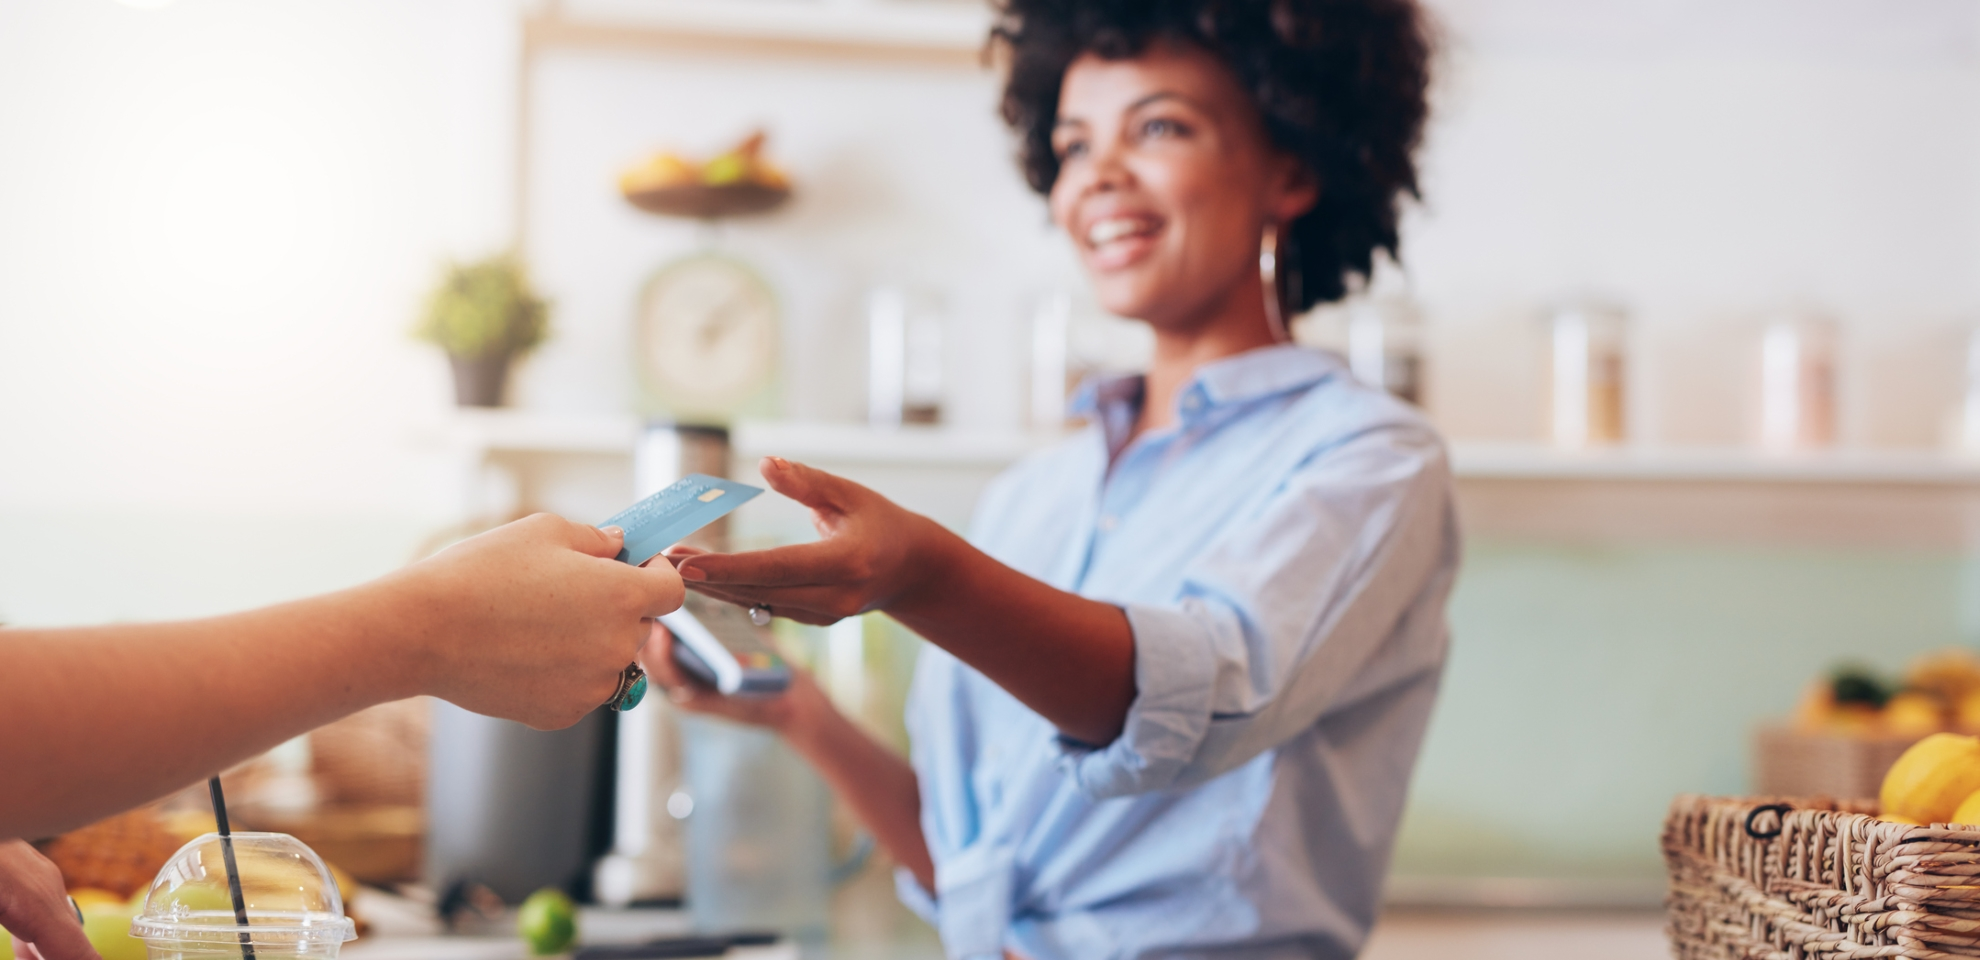 4 Tips for Handling Declined Customer Credit Card Transactions